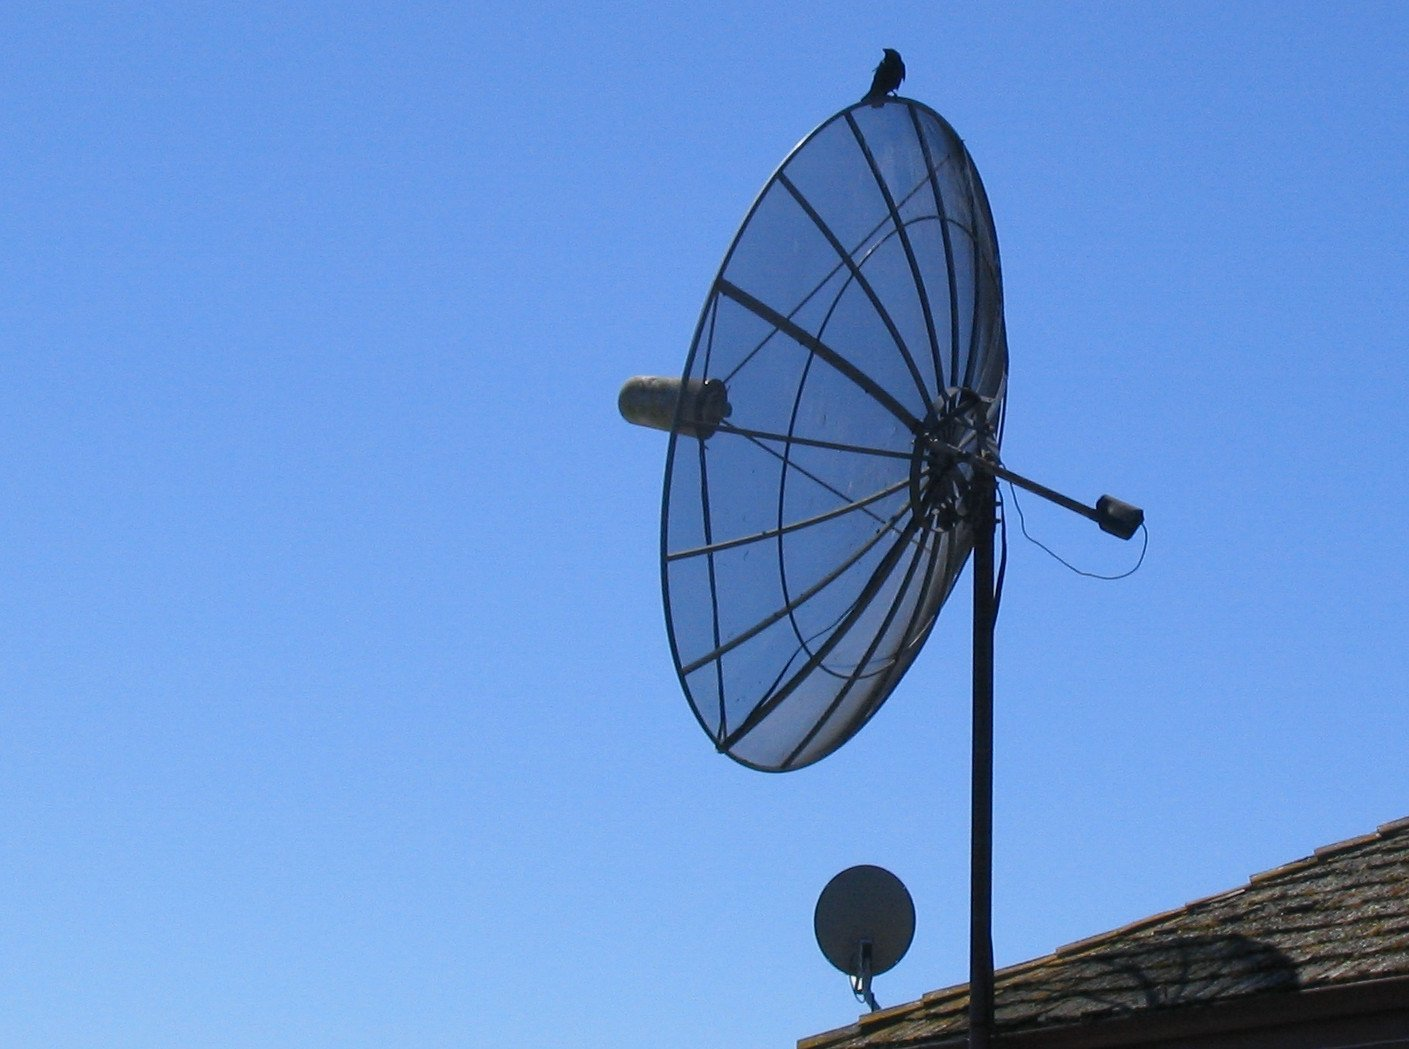 Installing radio antennas & satellite dishes